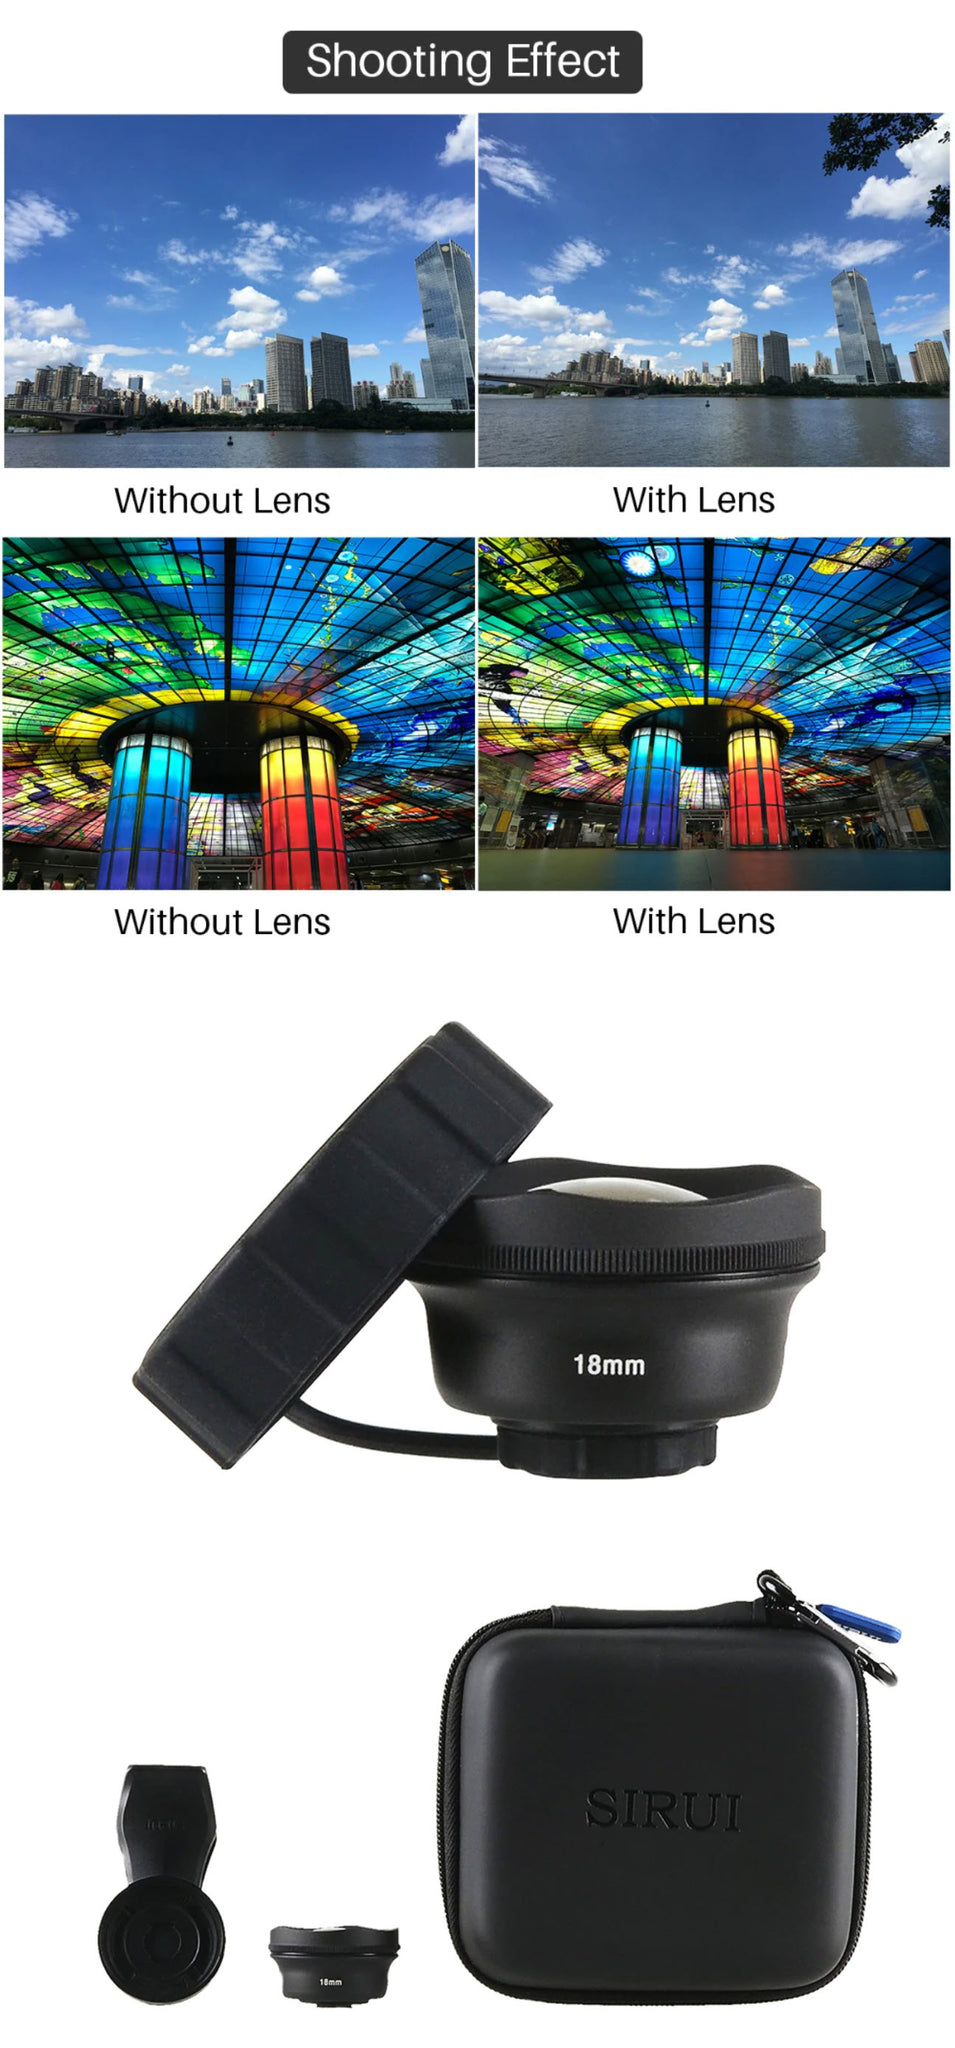 Wide Angle 10X Macro Phone Lens Shooting Effect Product Images